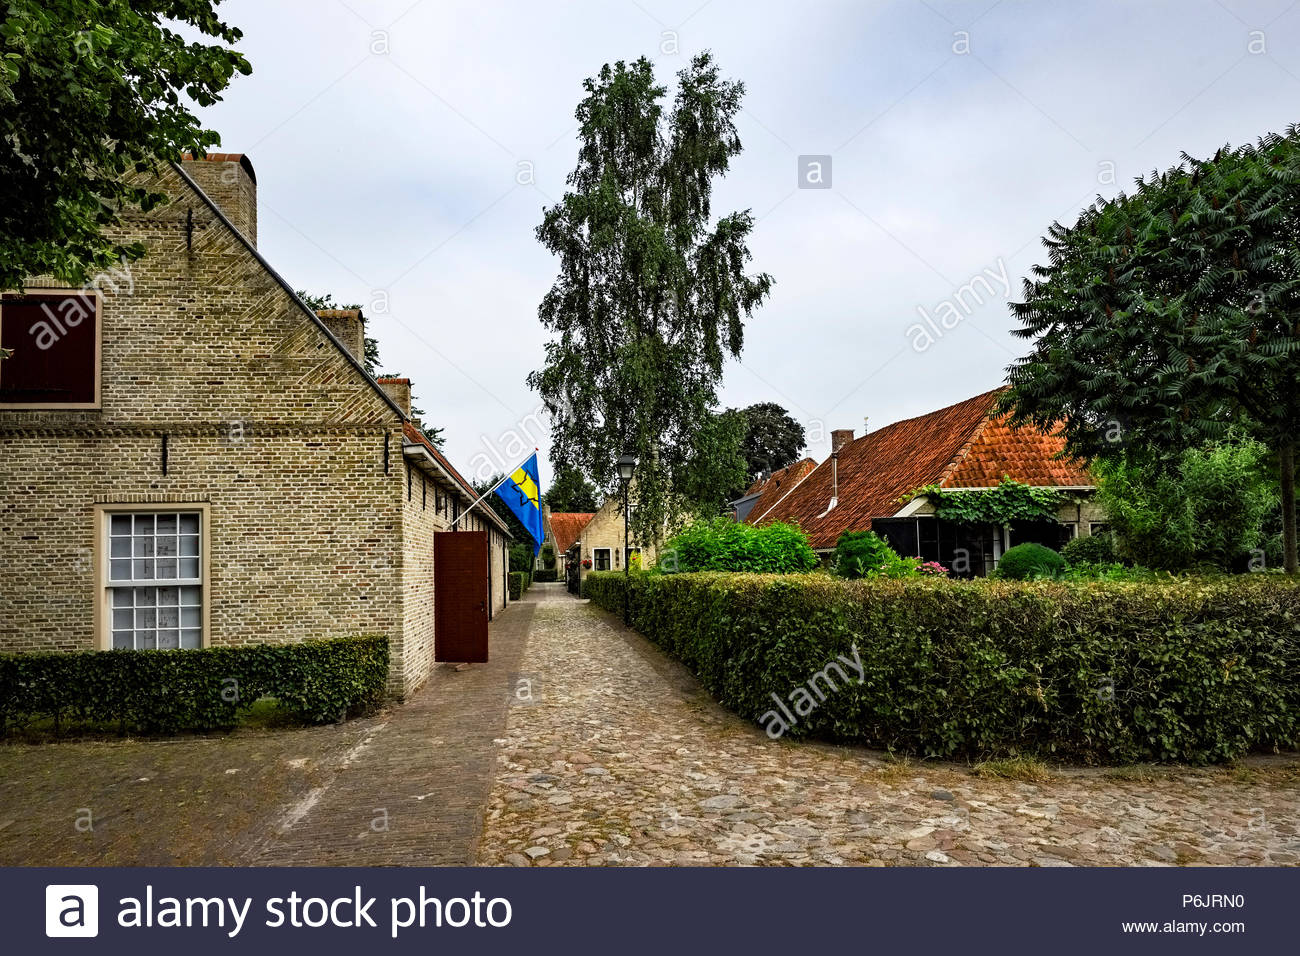 Buildings and cobblestone walkway at Vesting Bourtange, the star-shaped fortress in Groningen Province, The Netherlands - Stock Image